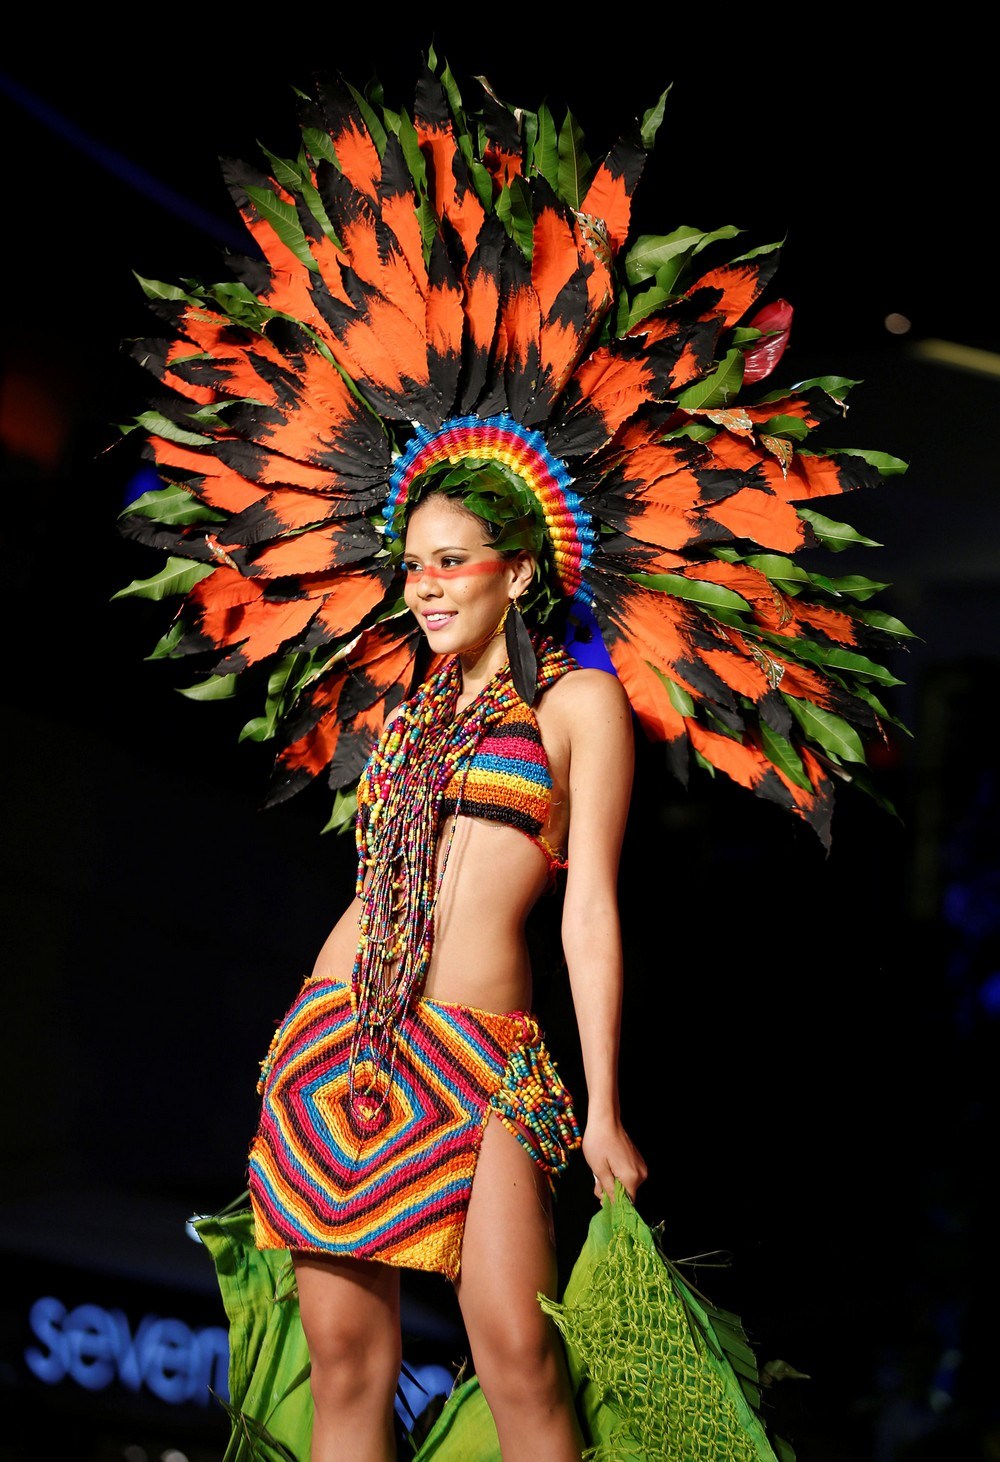 A model presents a creation during the Biofashion show in Cali